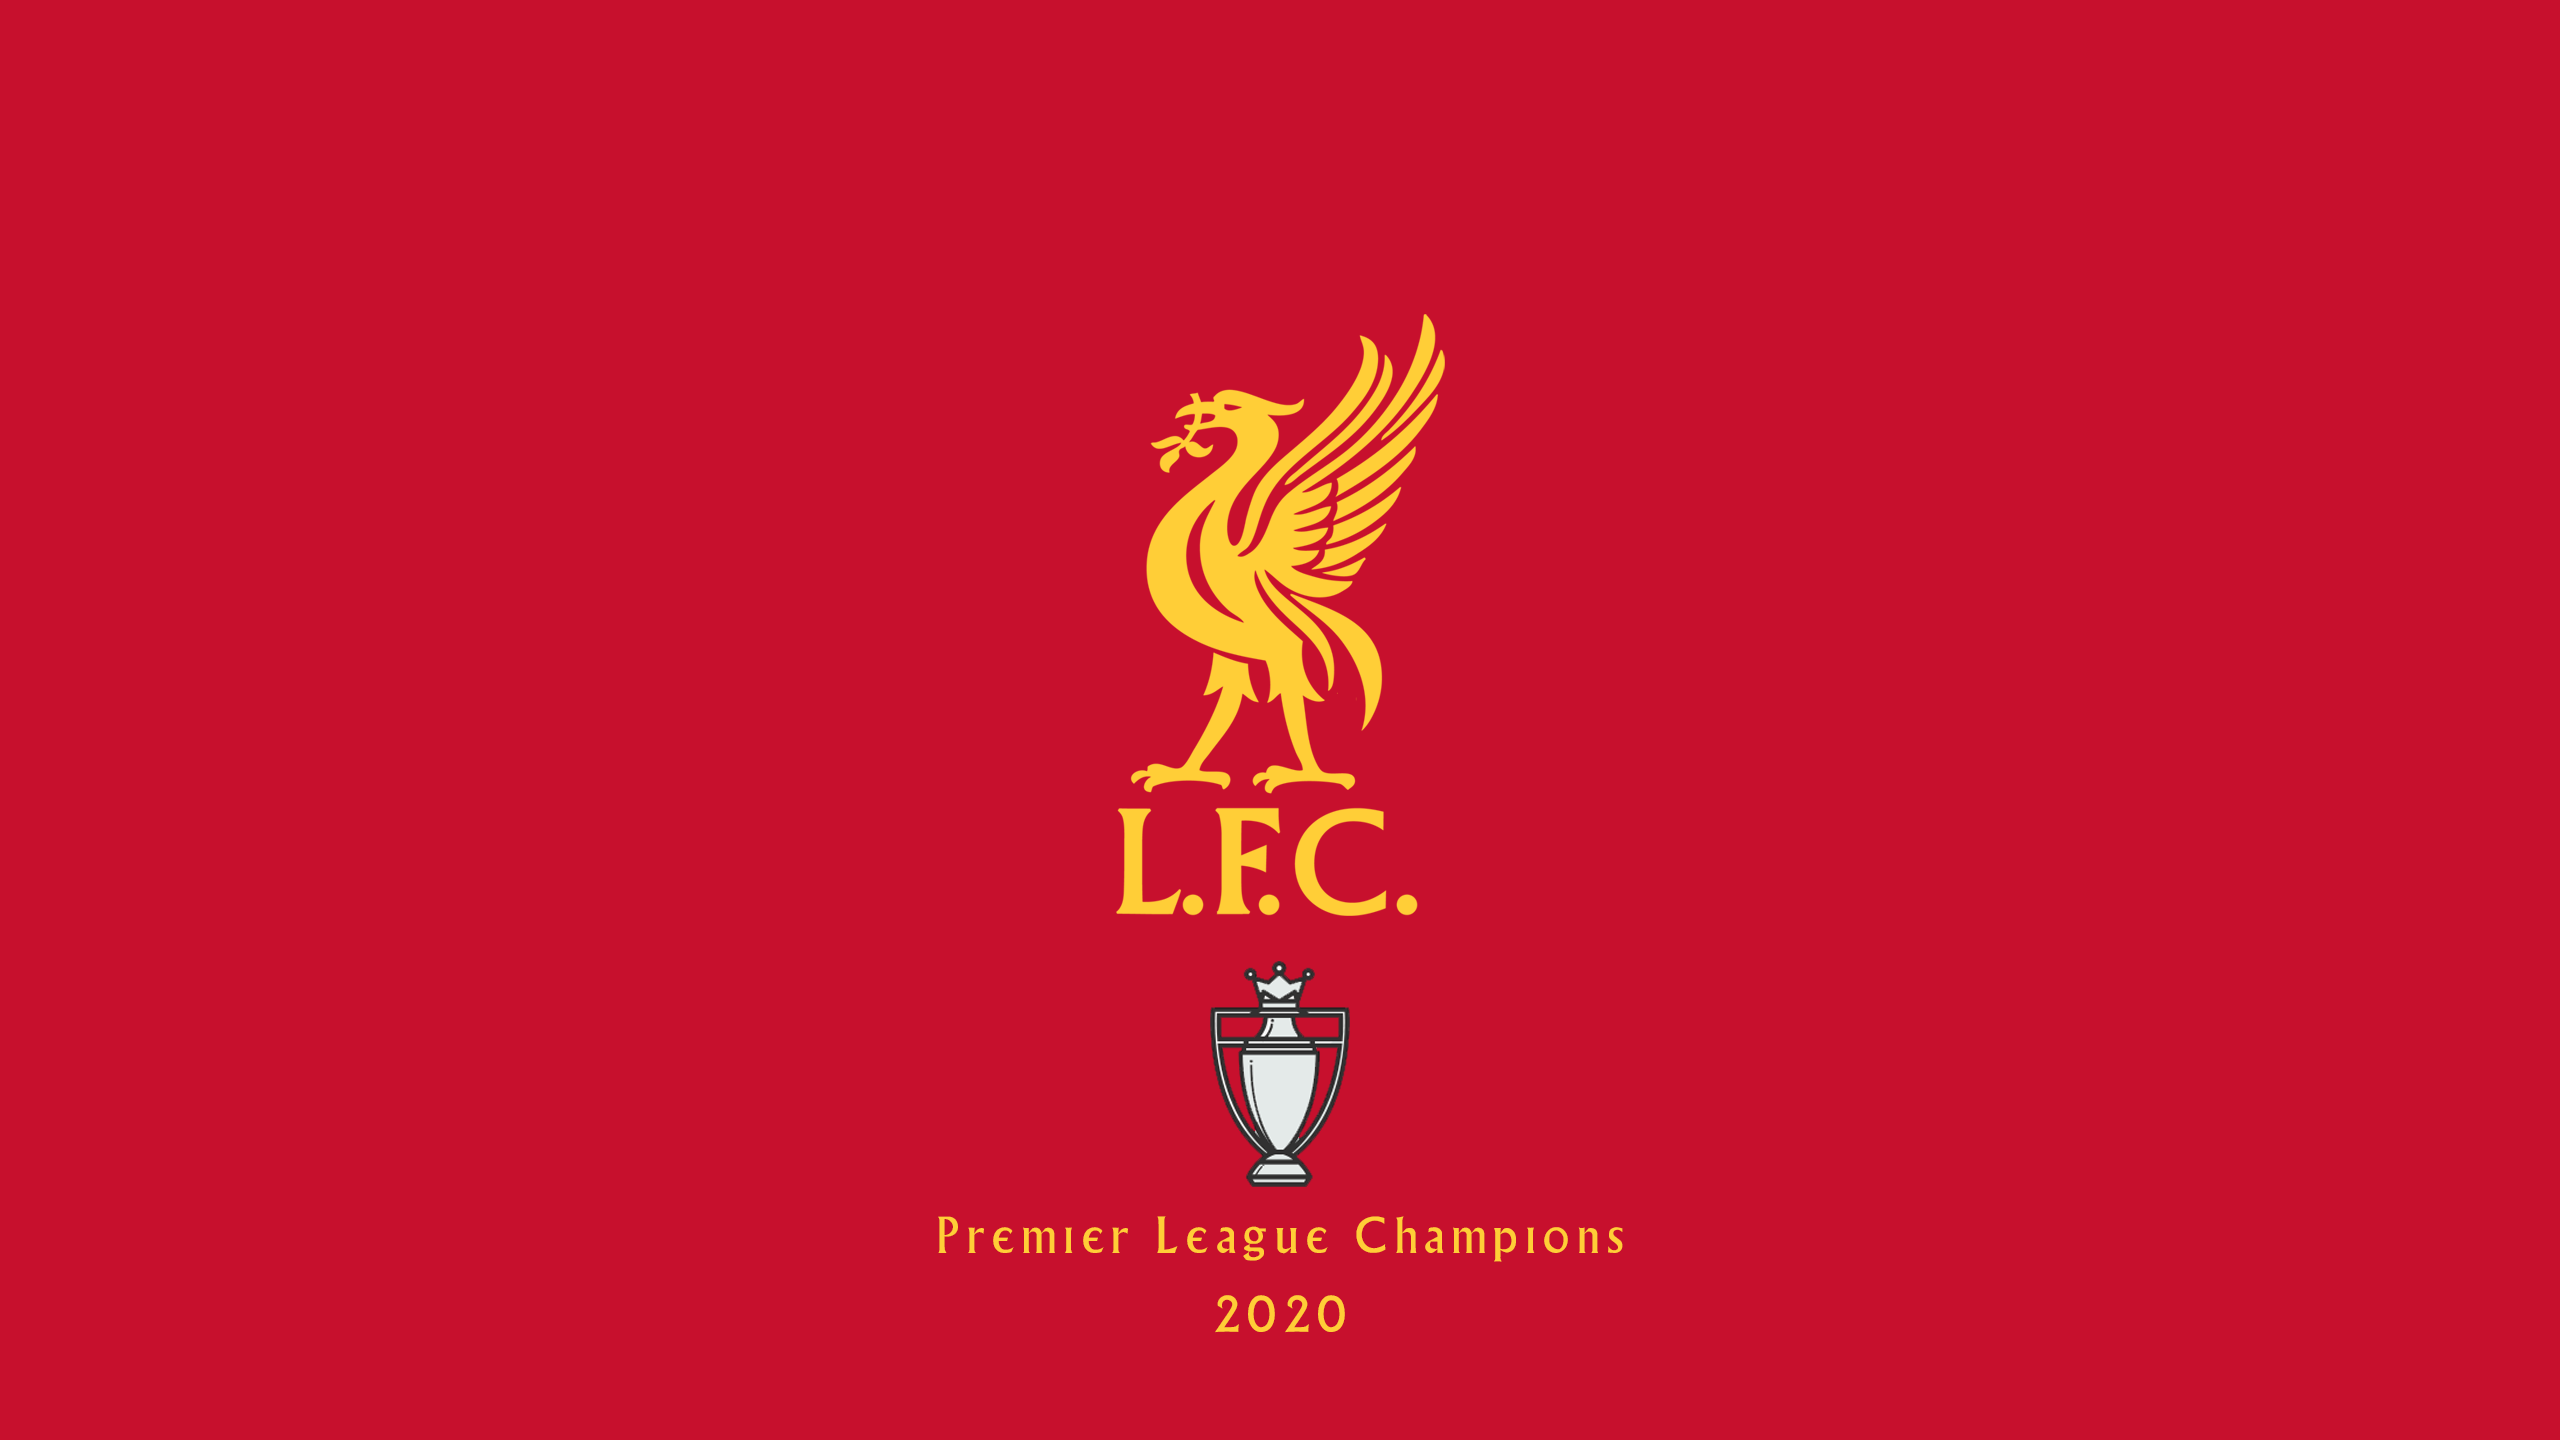 Liverpool FC - EPL Champs